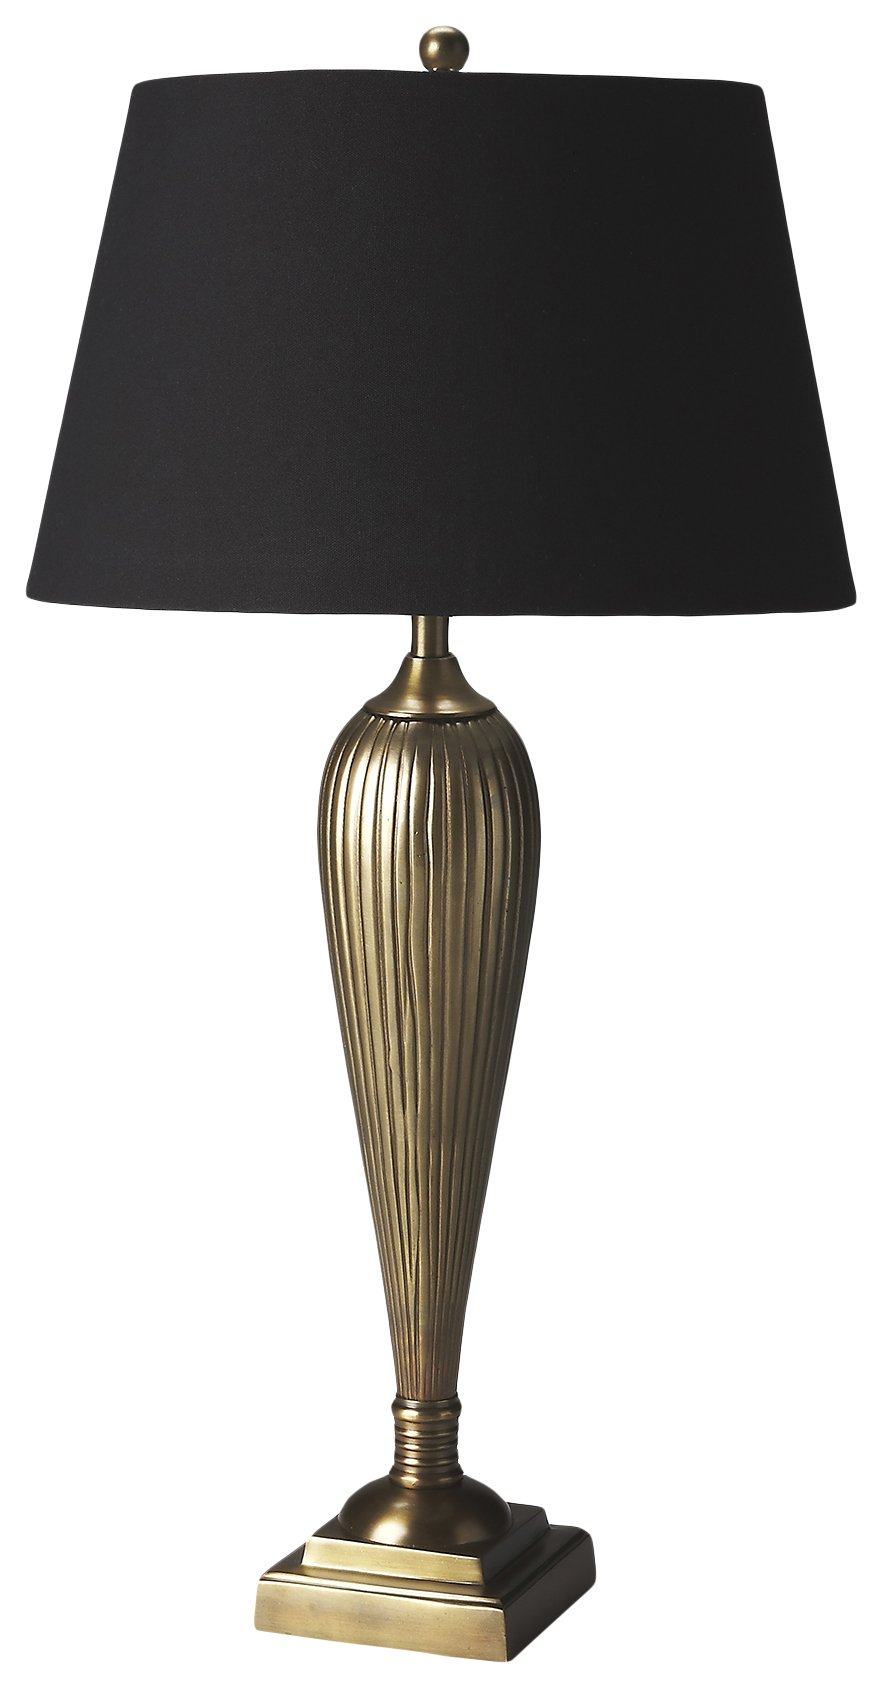 Iron Table Lamp with Linen Shade